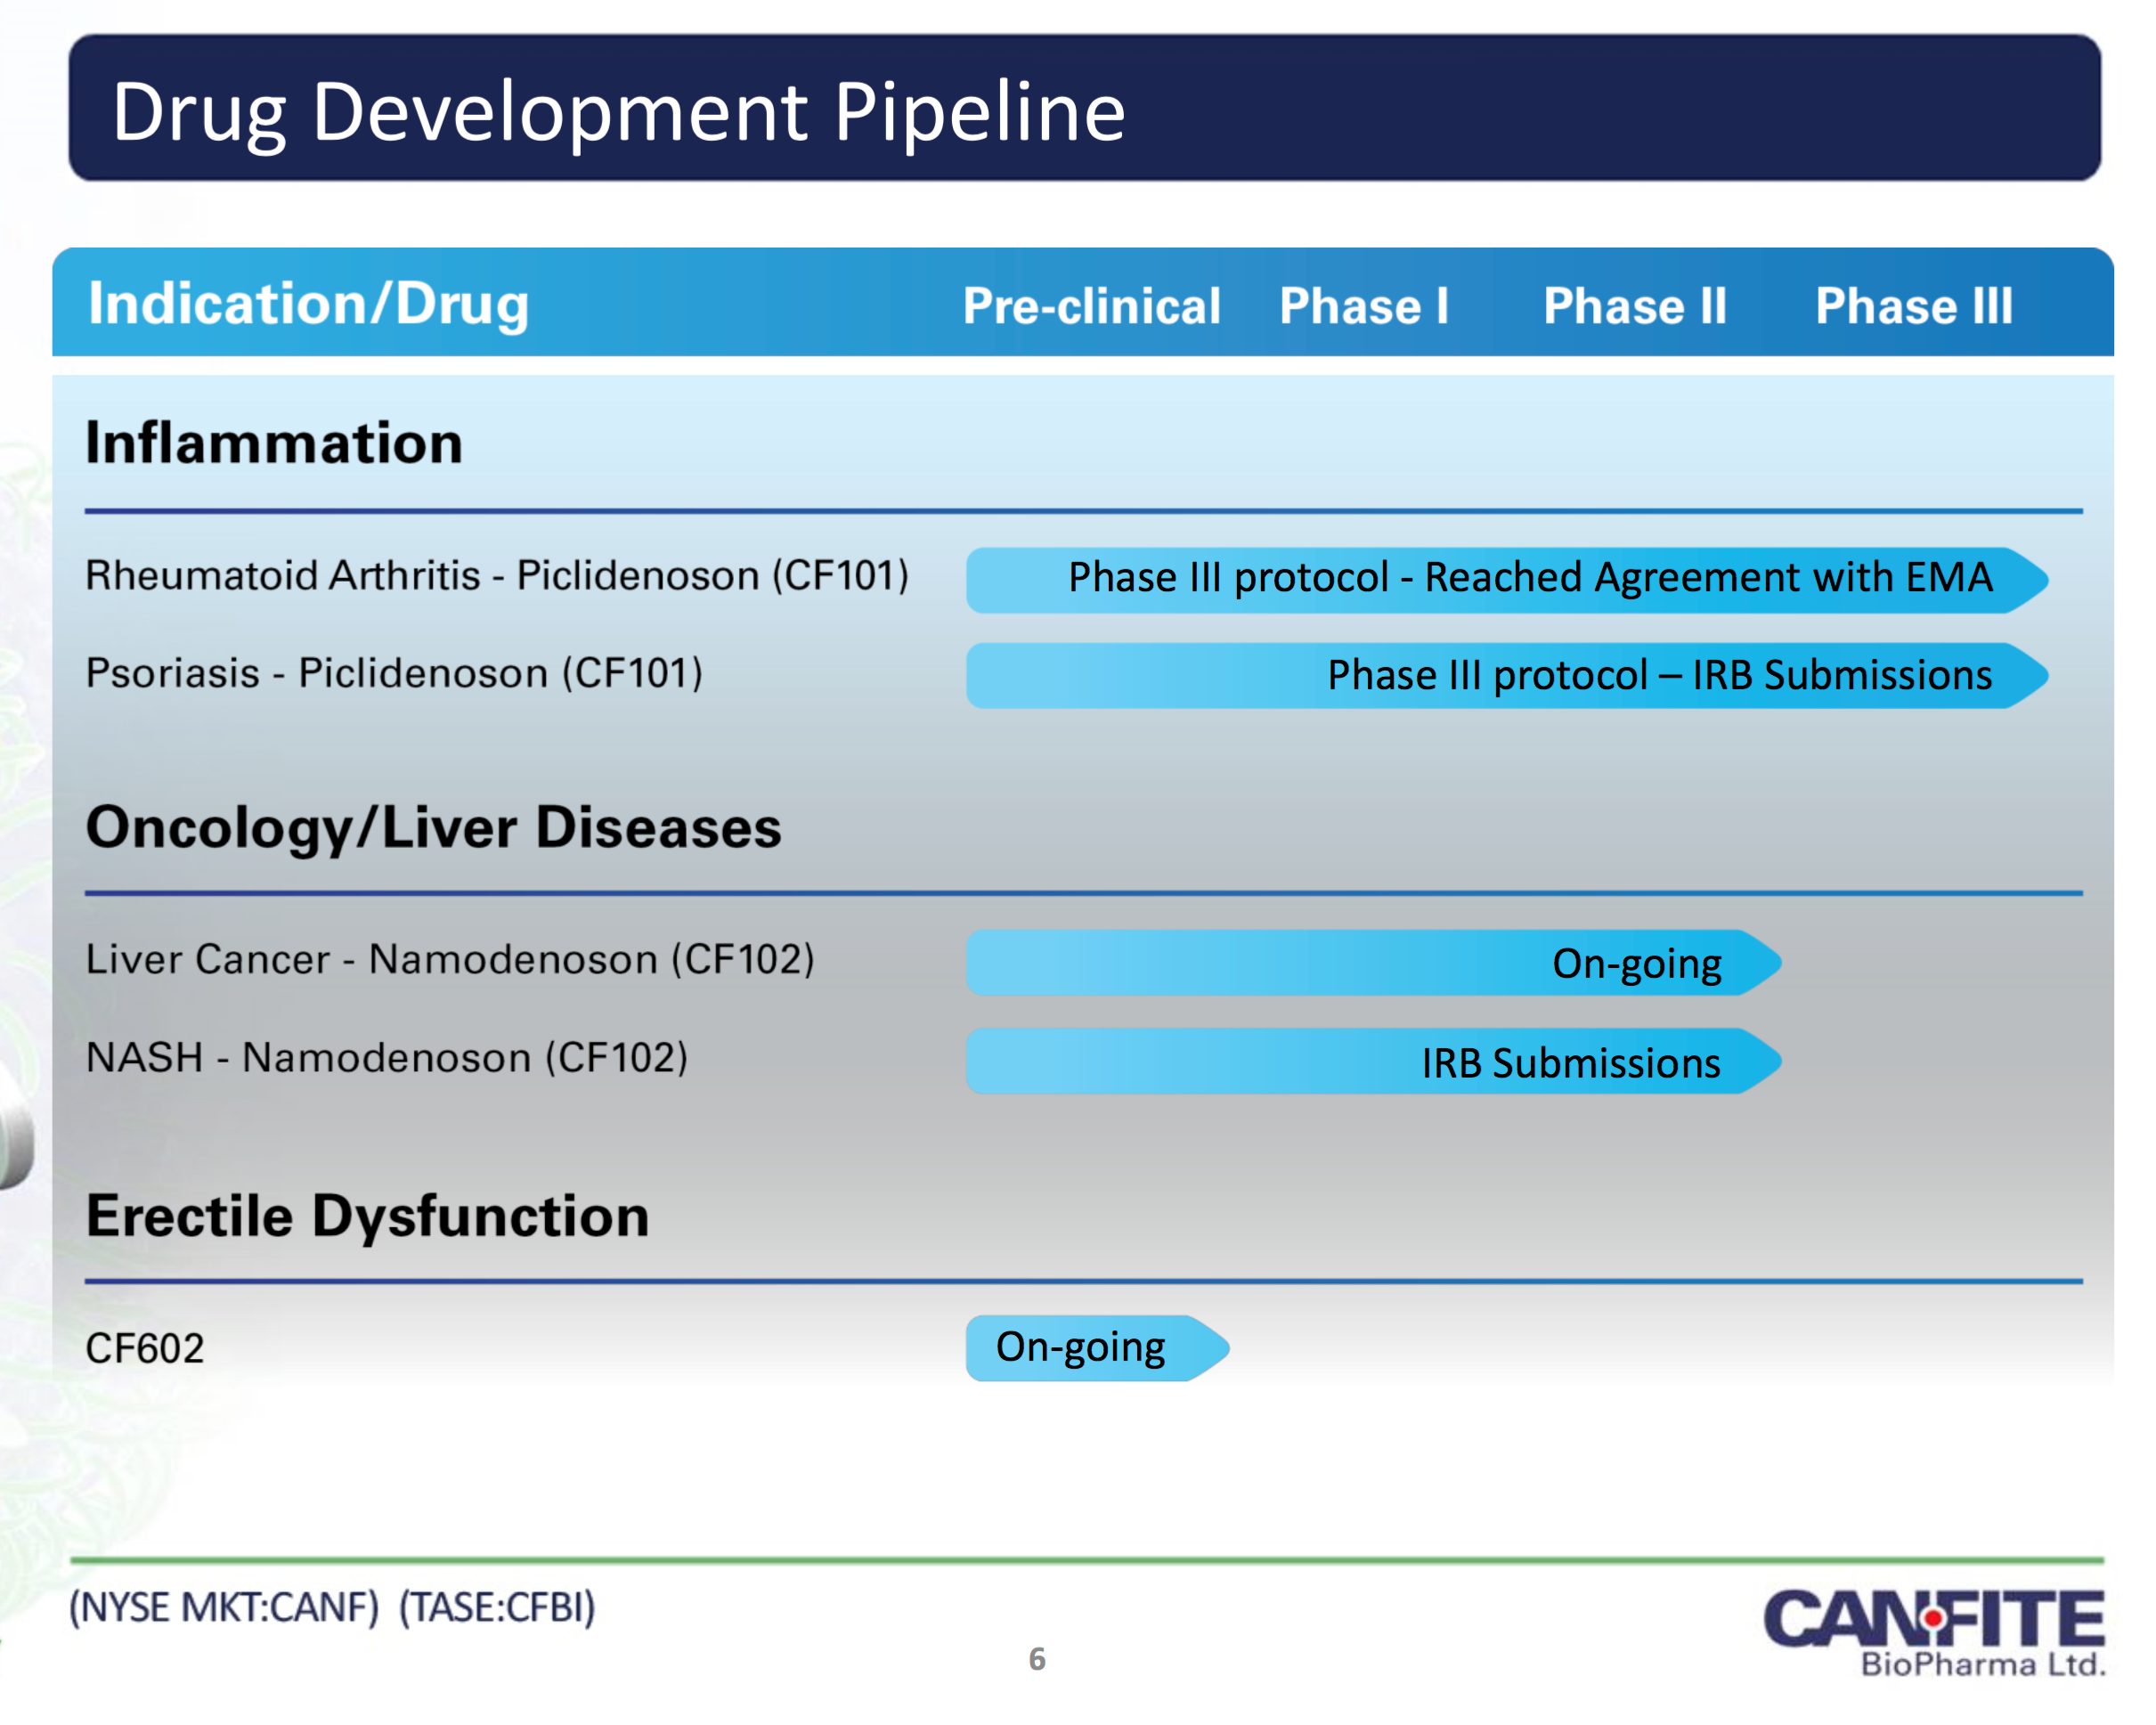 Can-Fite Biopharma: A Possible Threat To Celgene? - Celgene